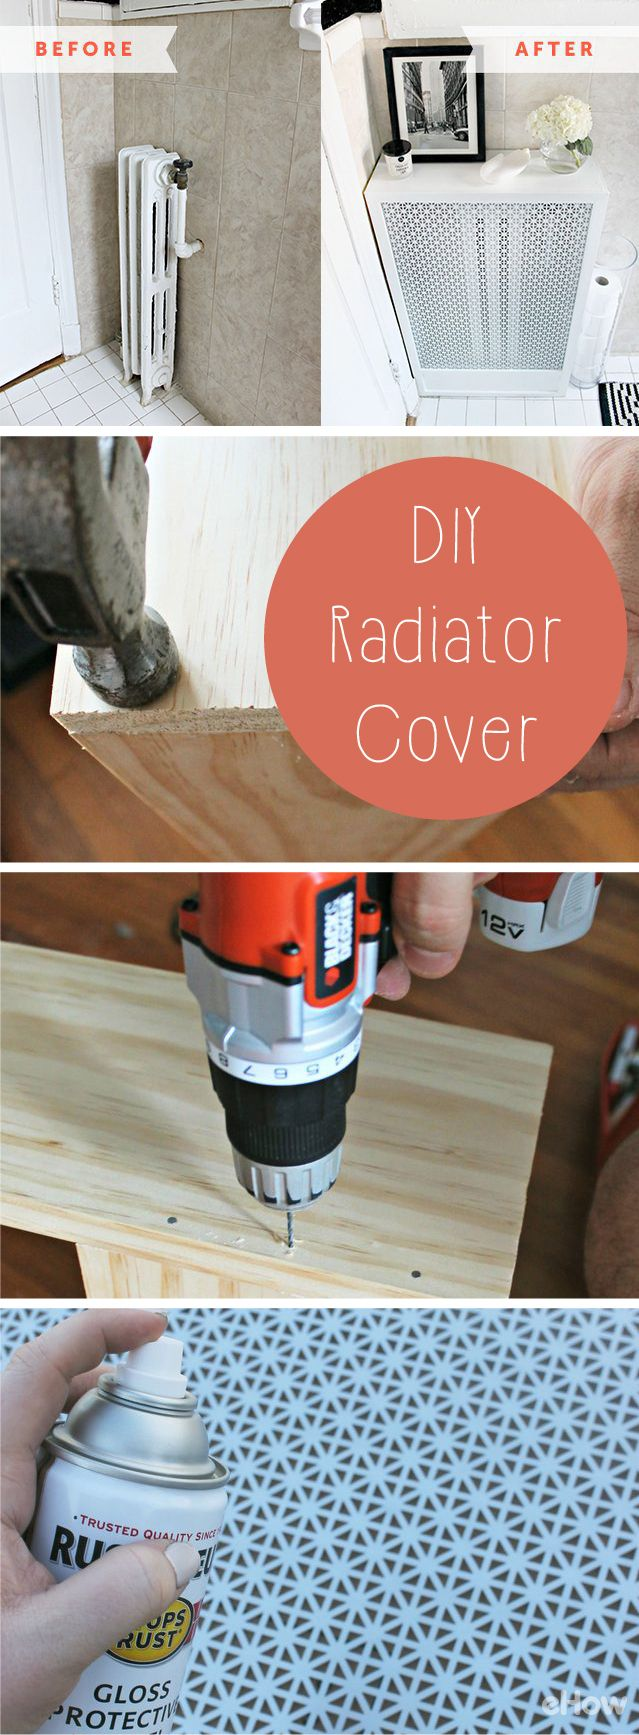 create a cover for that ugly radiator in your apartment and get bonus shelf space